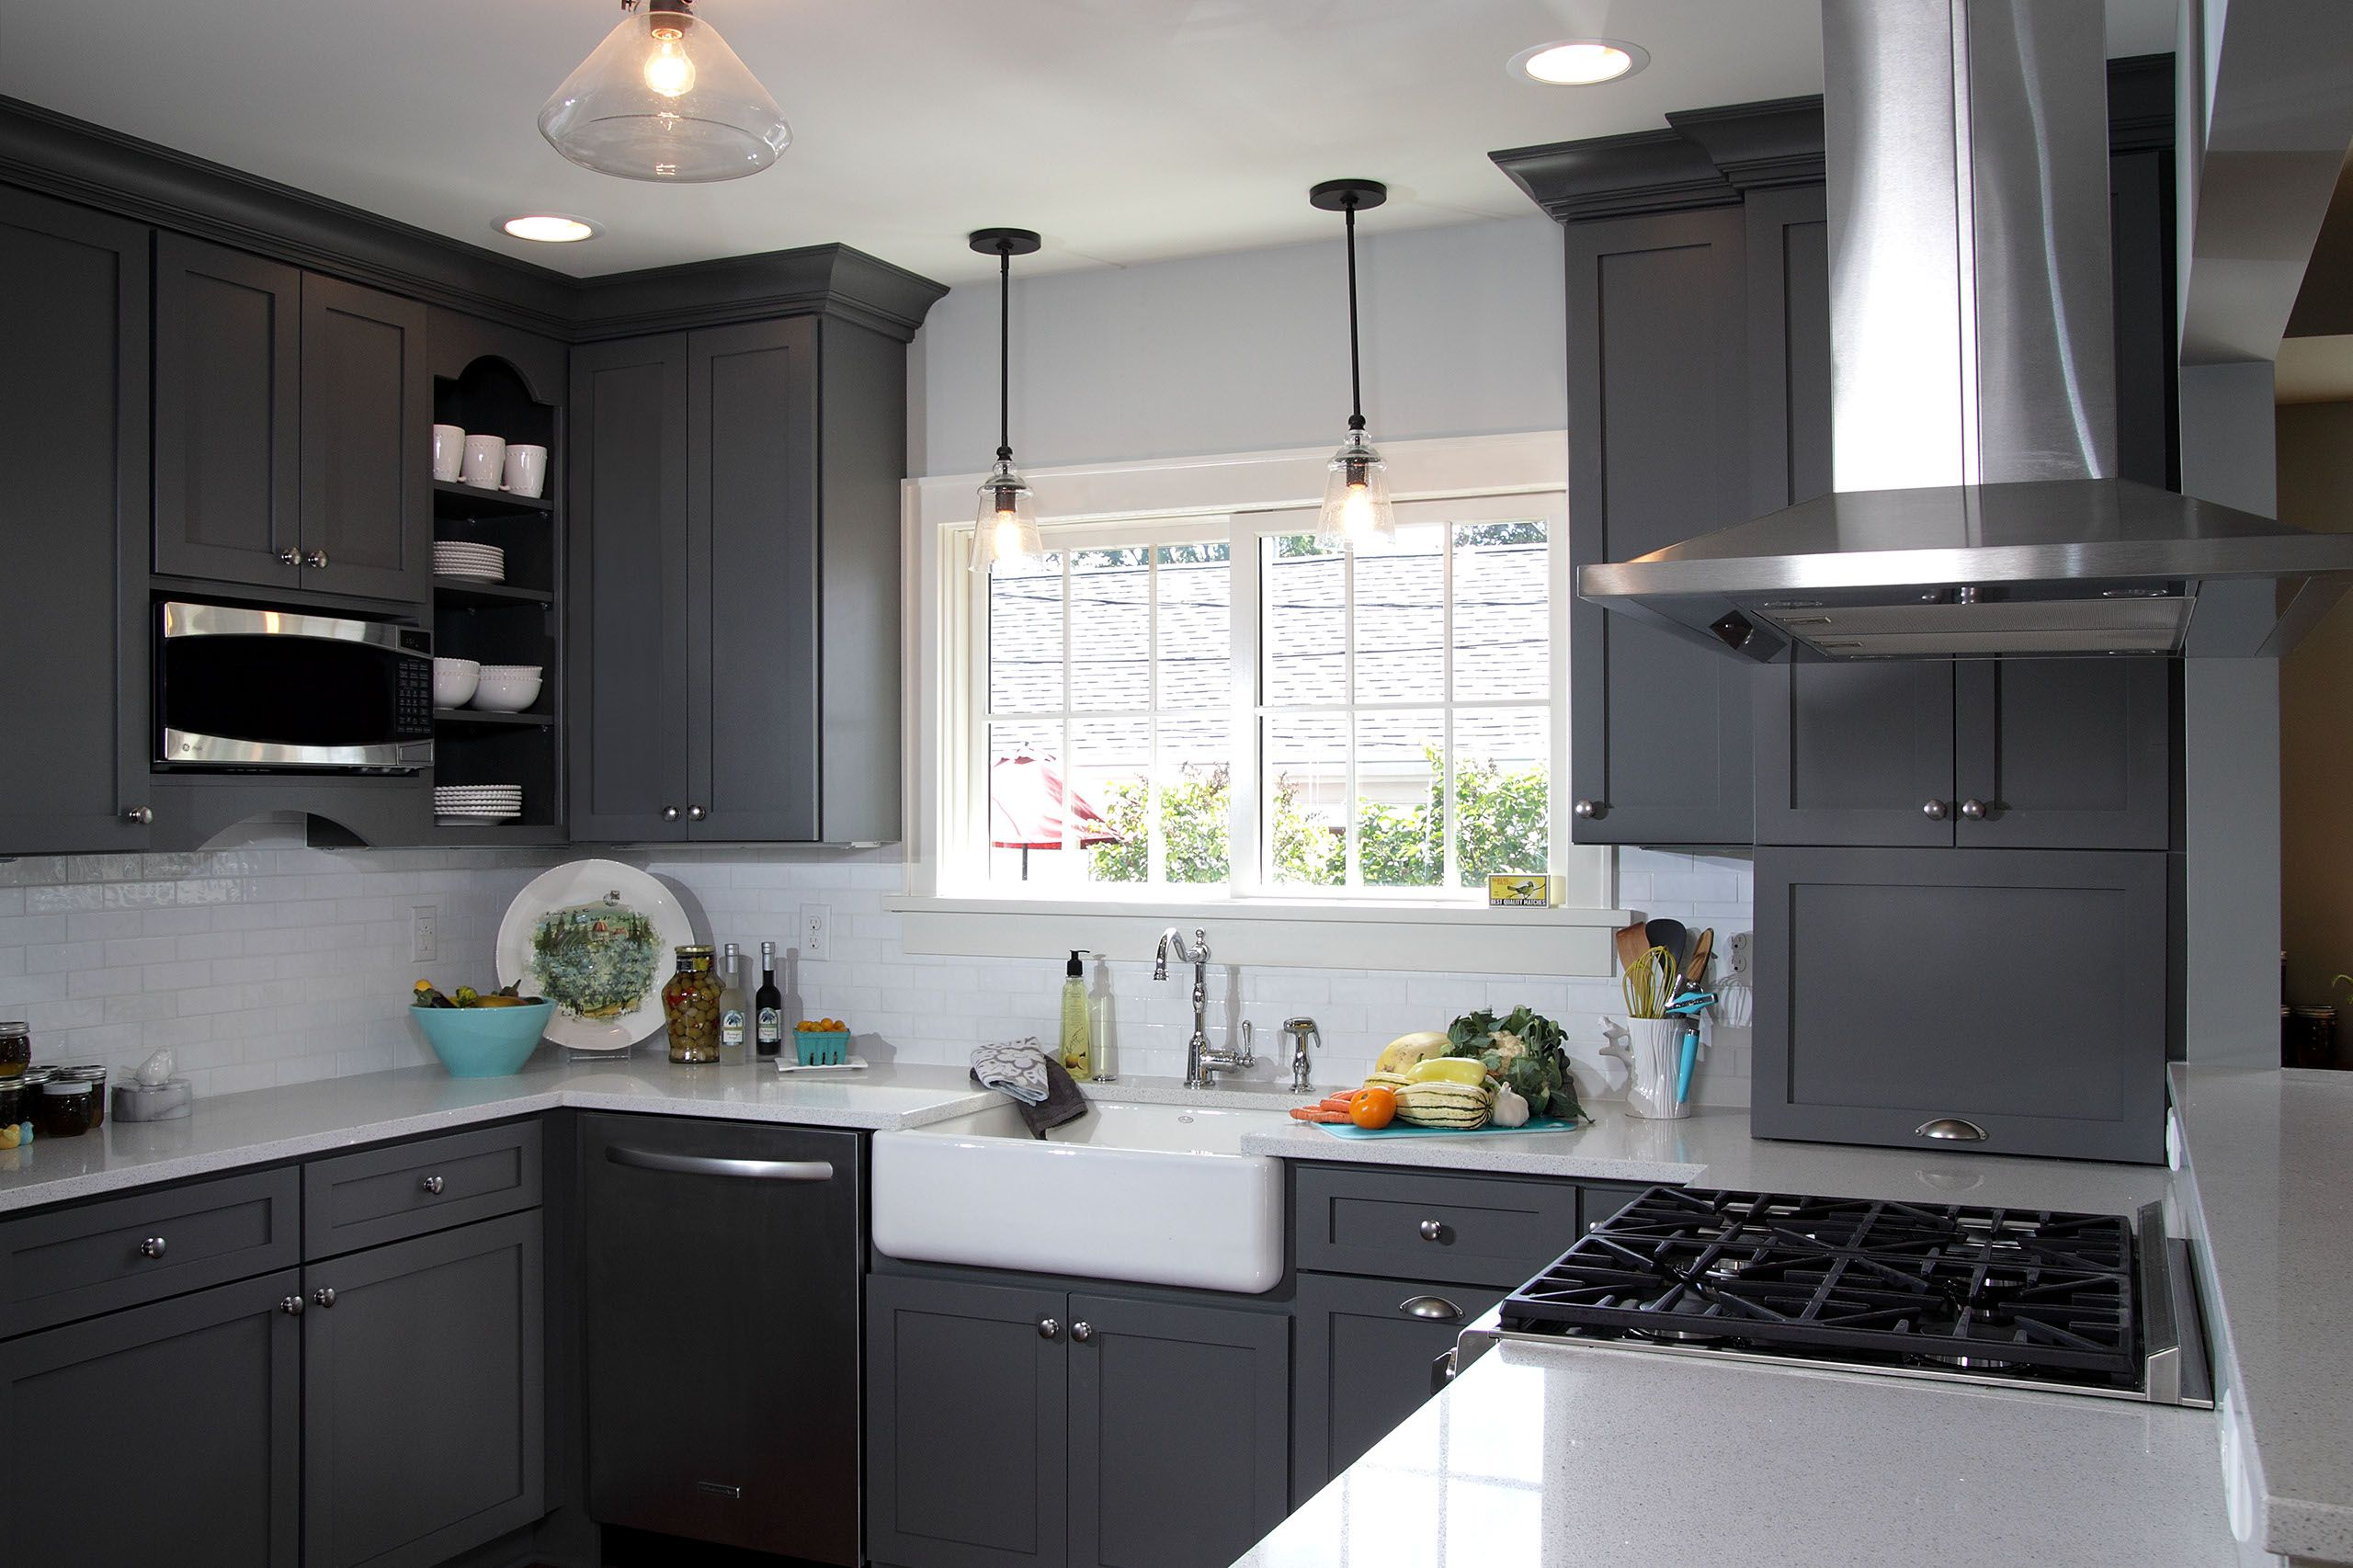 Gray Kitchen Walls With Dark Cabinets - we have several ...